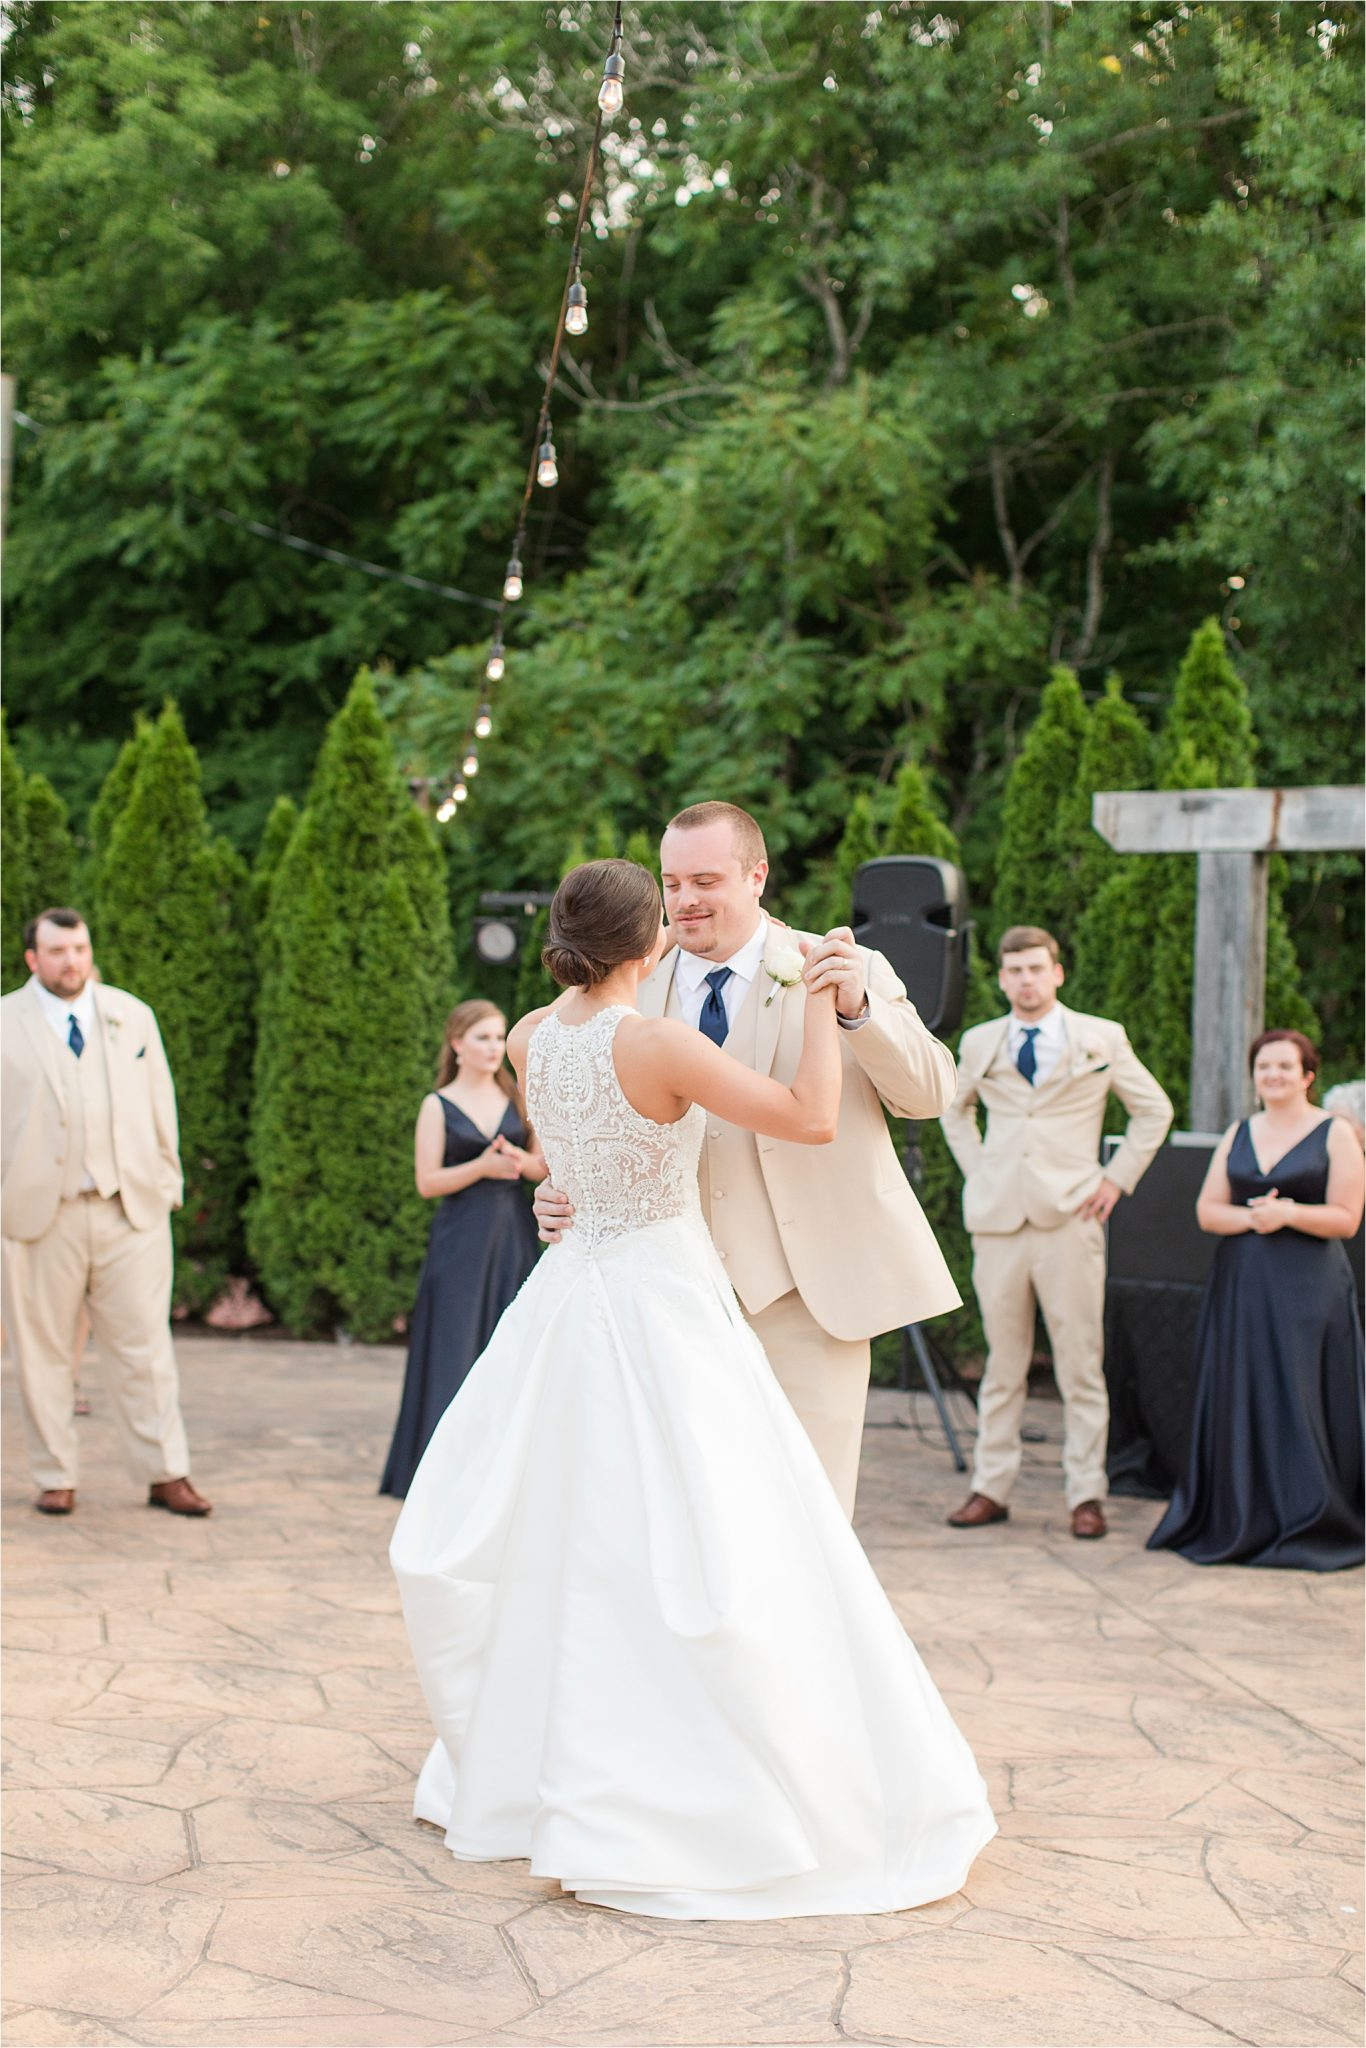 Sonnet House, Birmingham Alabama Wedding Photographer, Wedding dance, Wedding reception